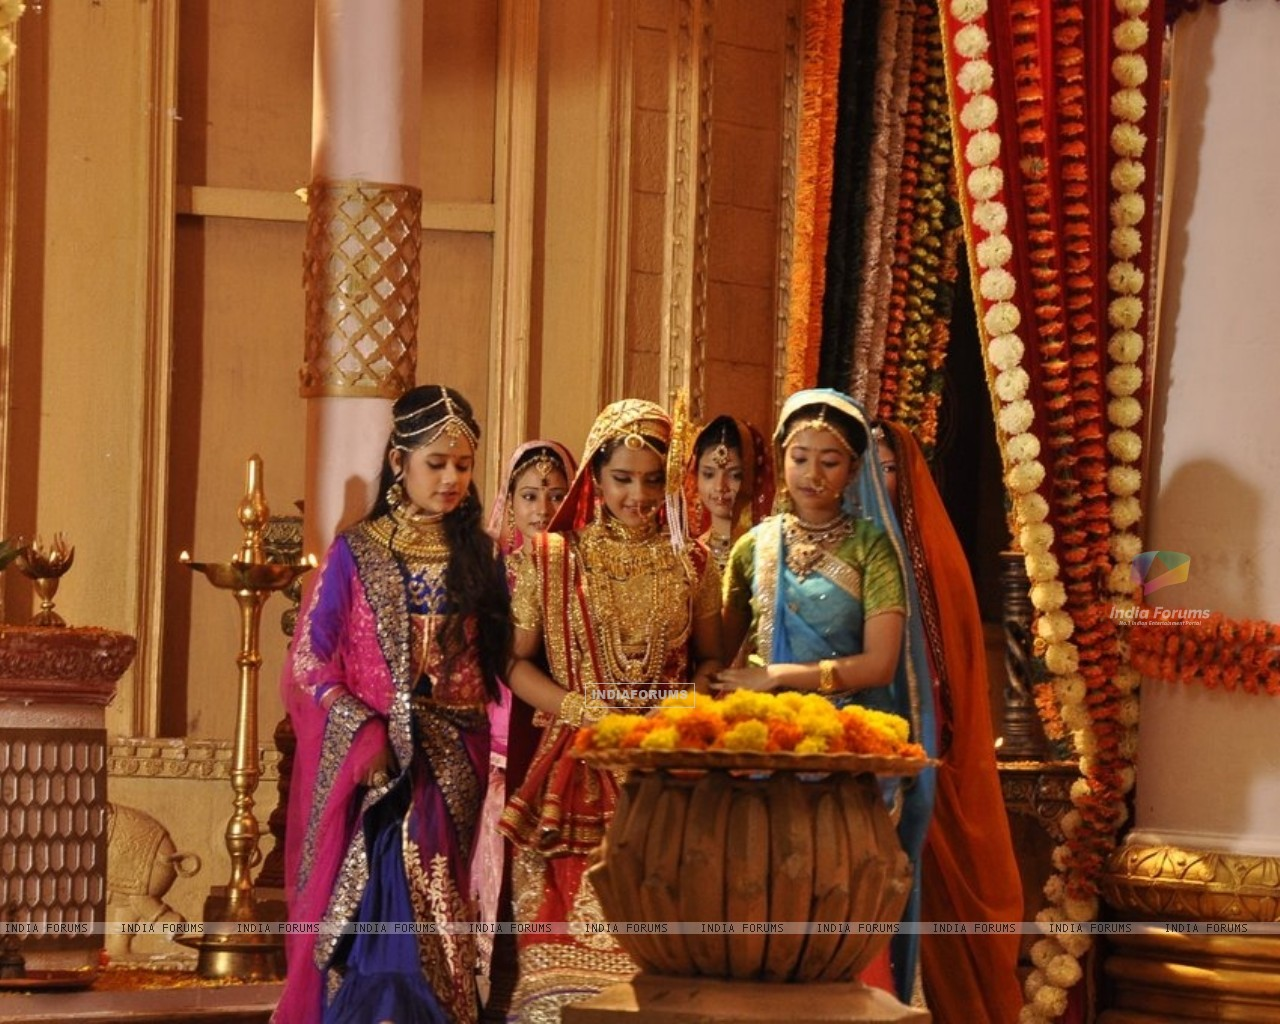 jannat zubair rahmani royal rajputana wedding of kunwar